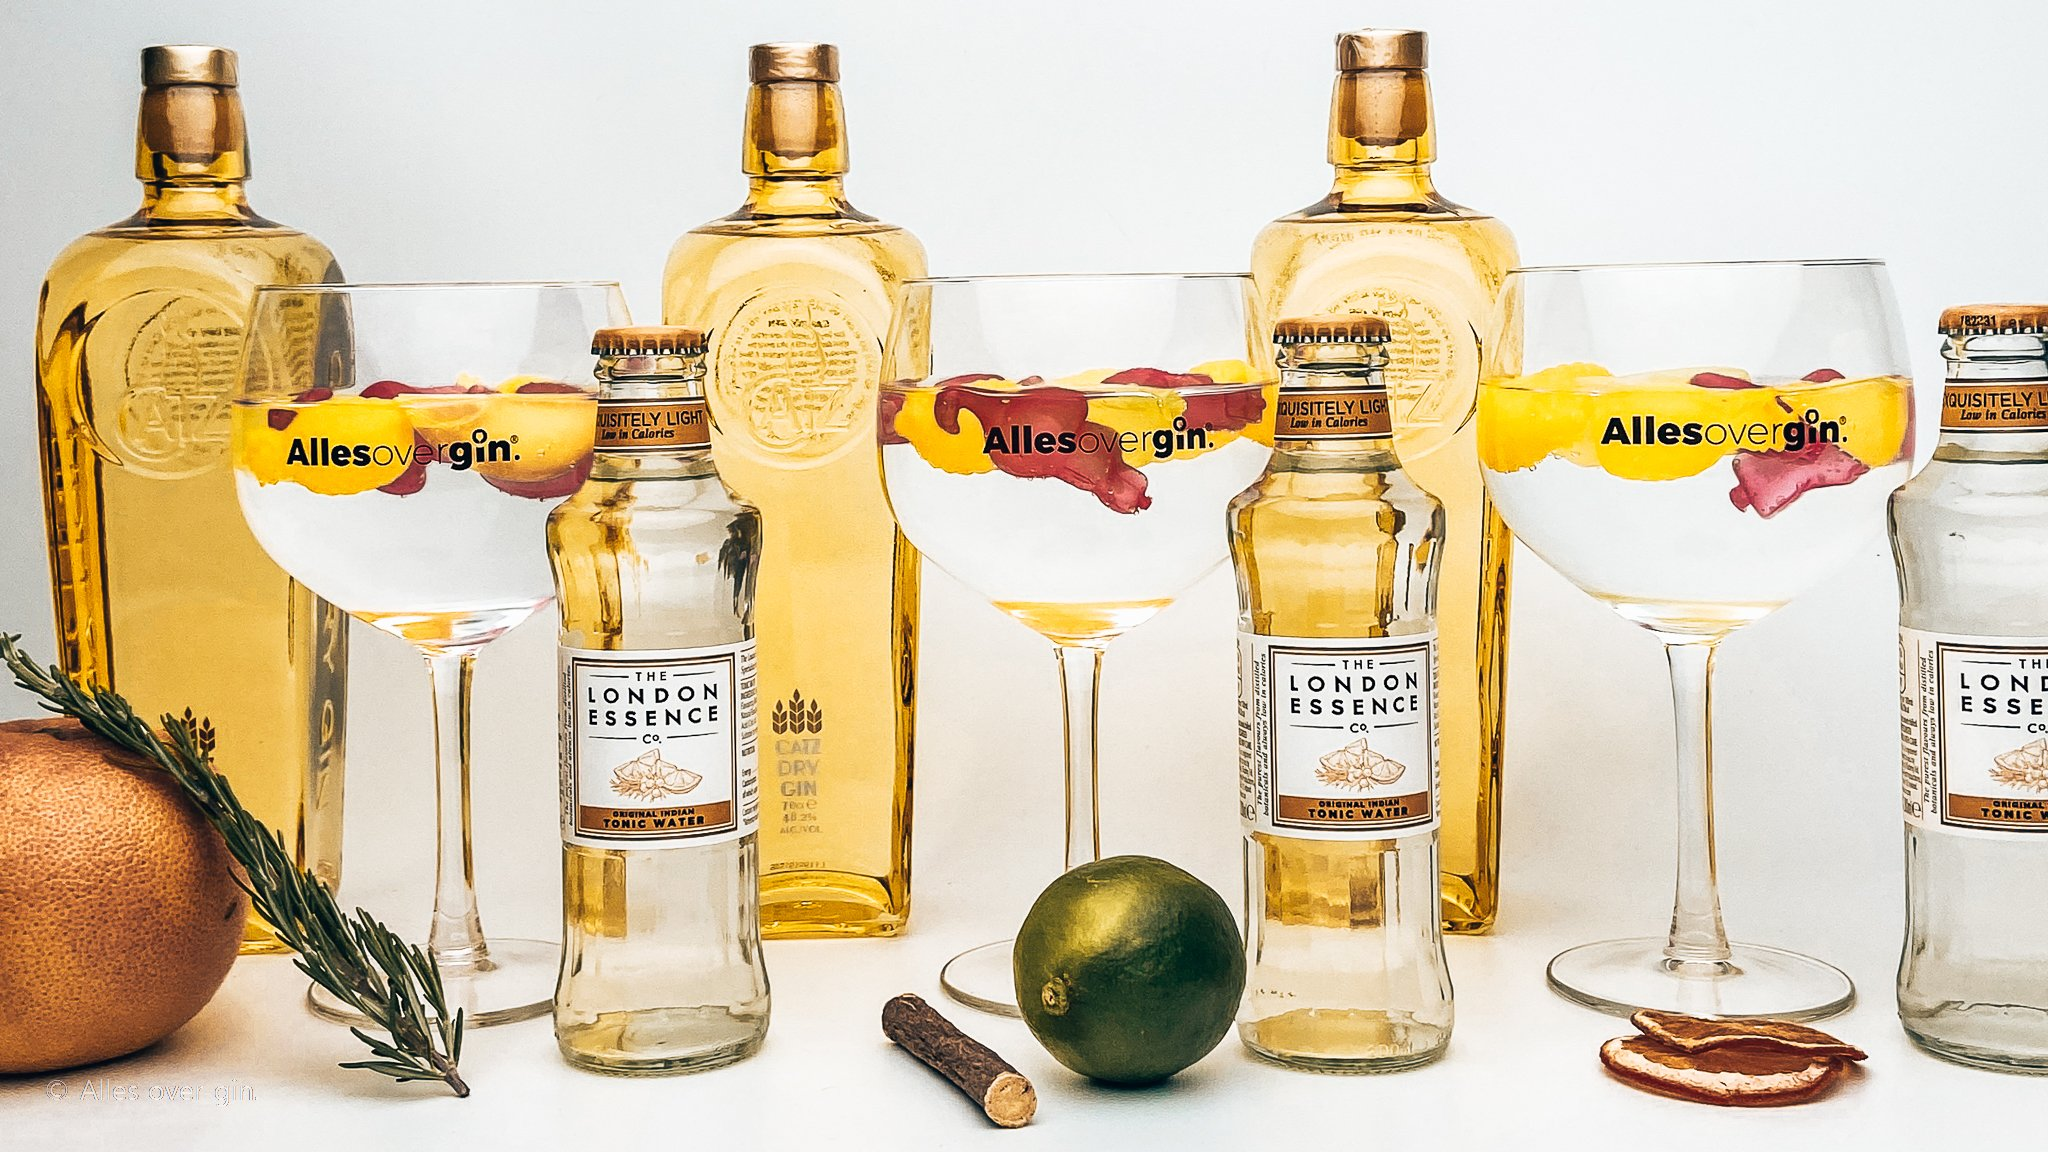 Gin-tonic recepten, classic serves met CATZ Dry Gin en London Essence mixers, Alles over gin.